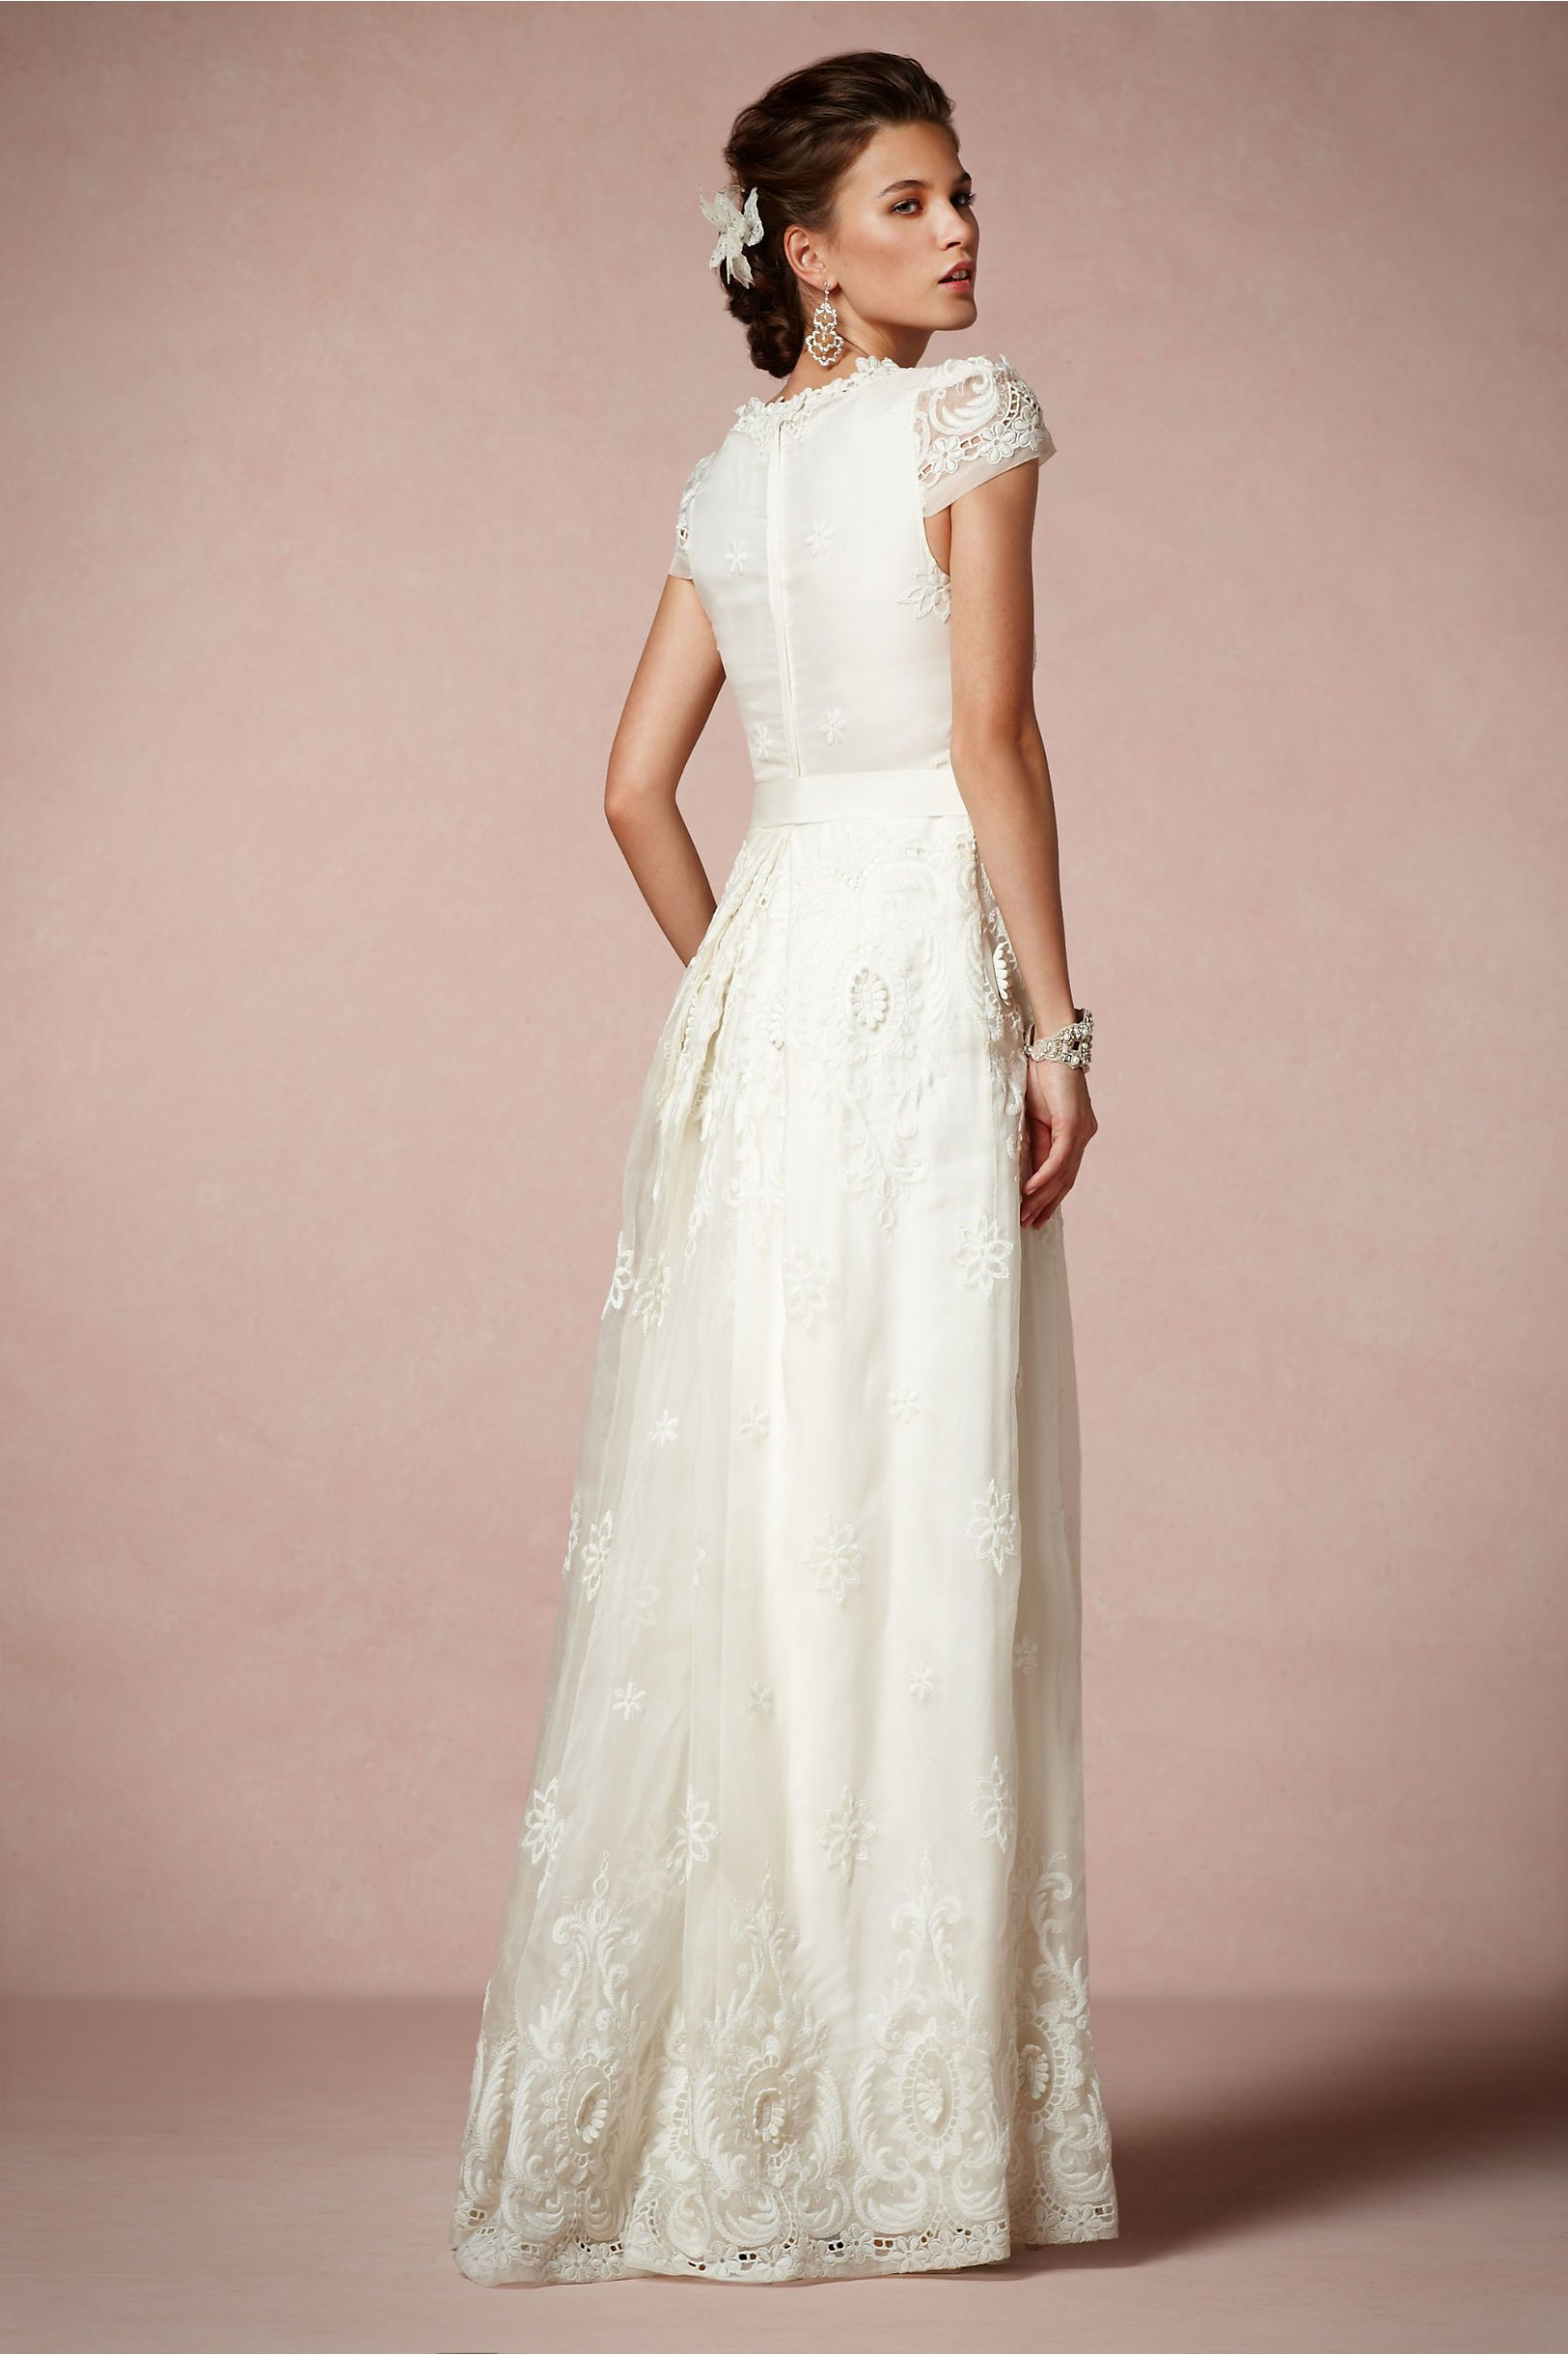 Rococo Gown in Bride Wedding Dresses at BHLDN   Hitched   Pinterest ...